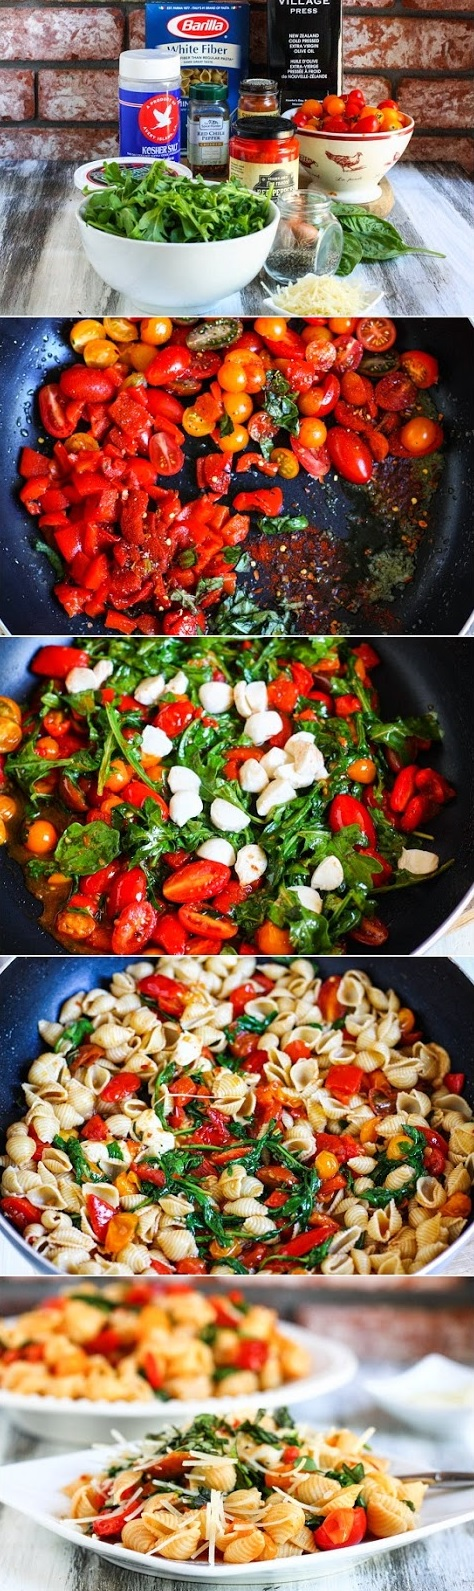 Pasta With Peppers, Squash, And Tomatoes Recipe — Dishmaps